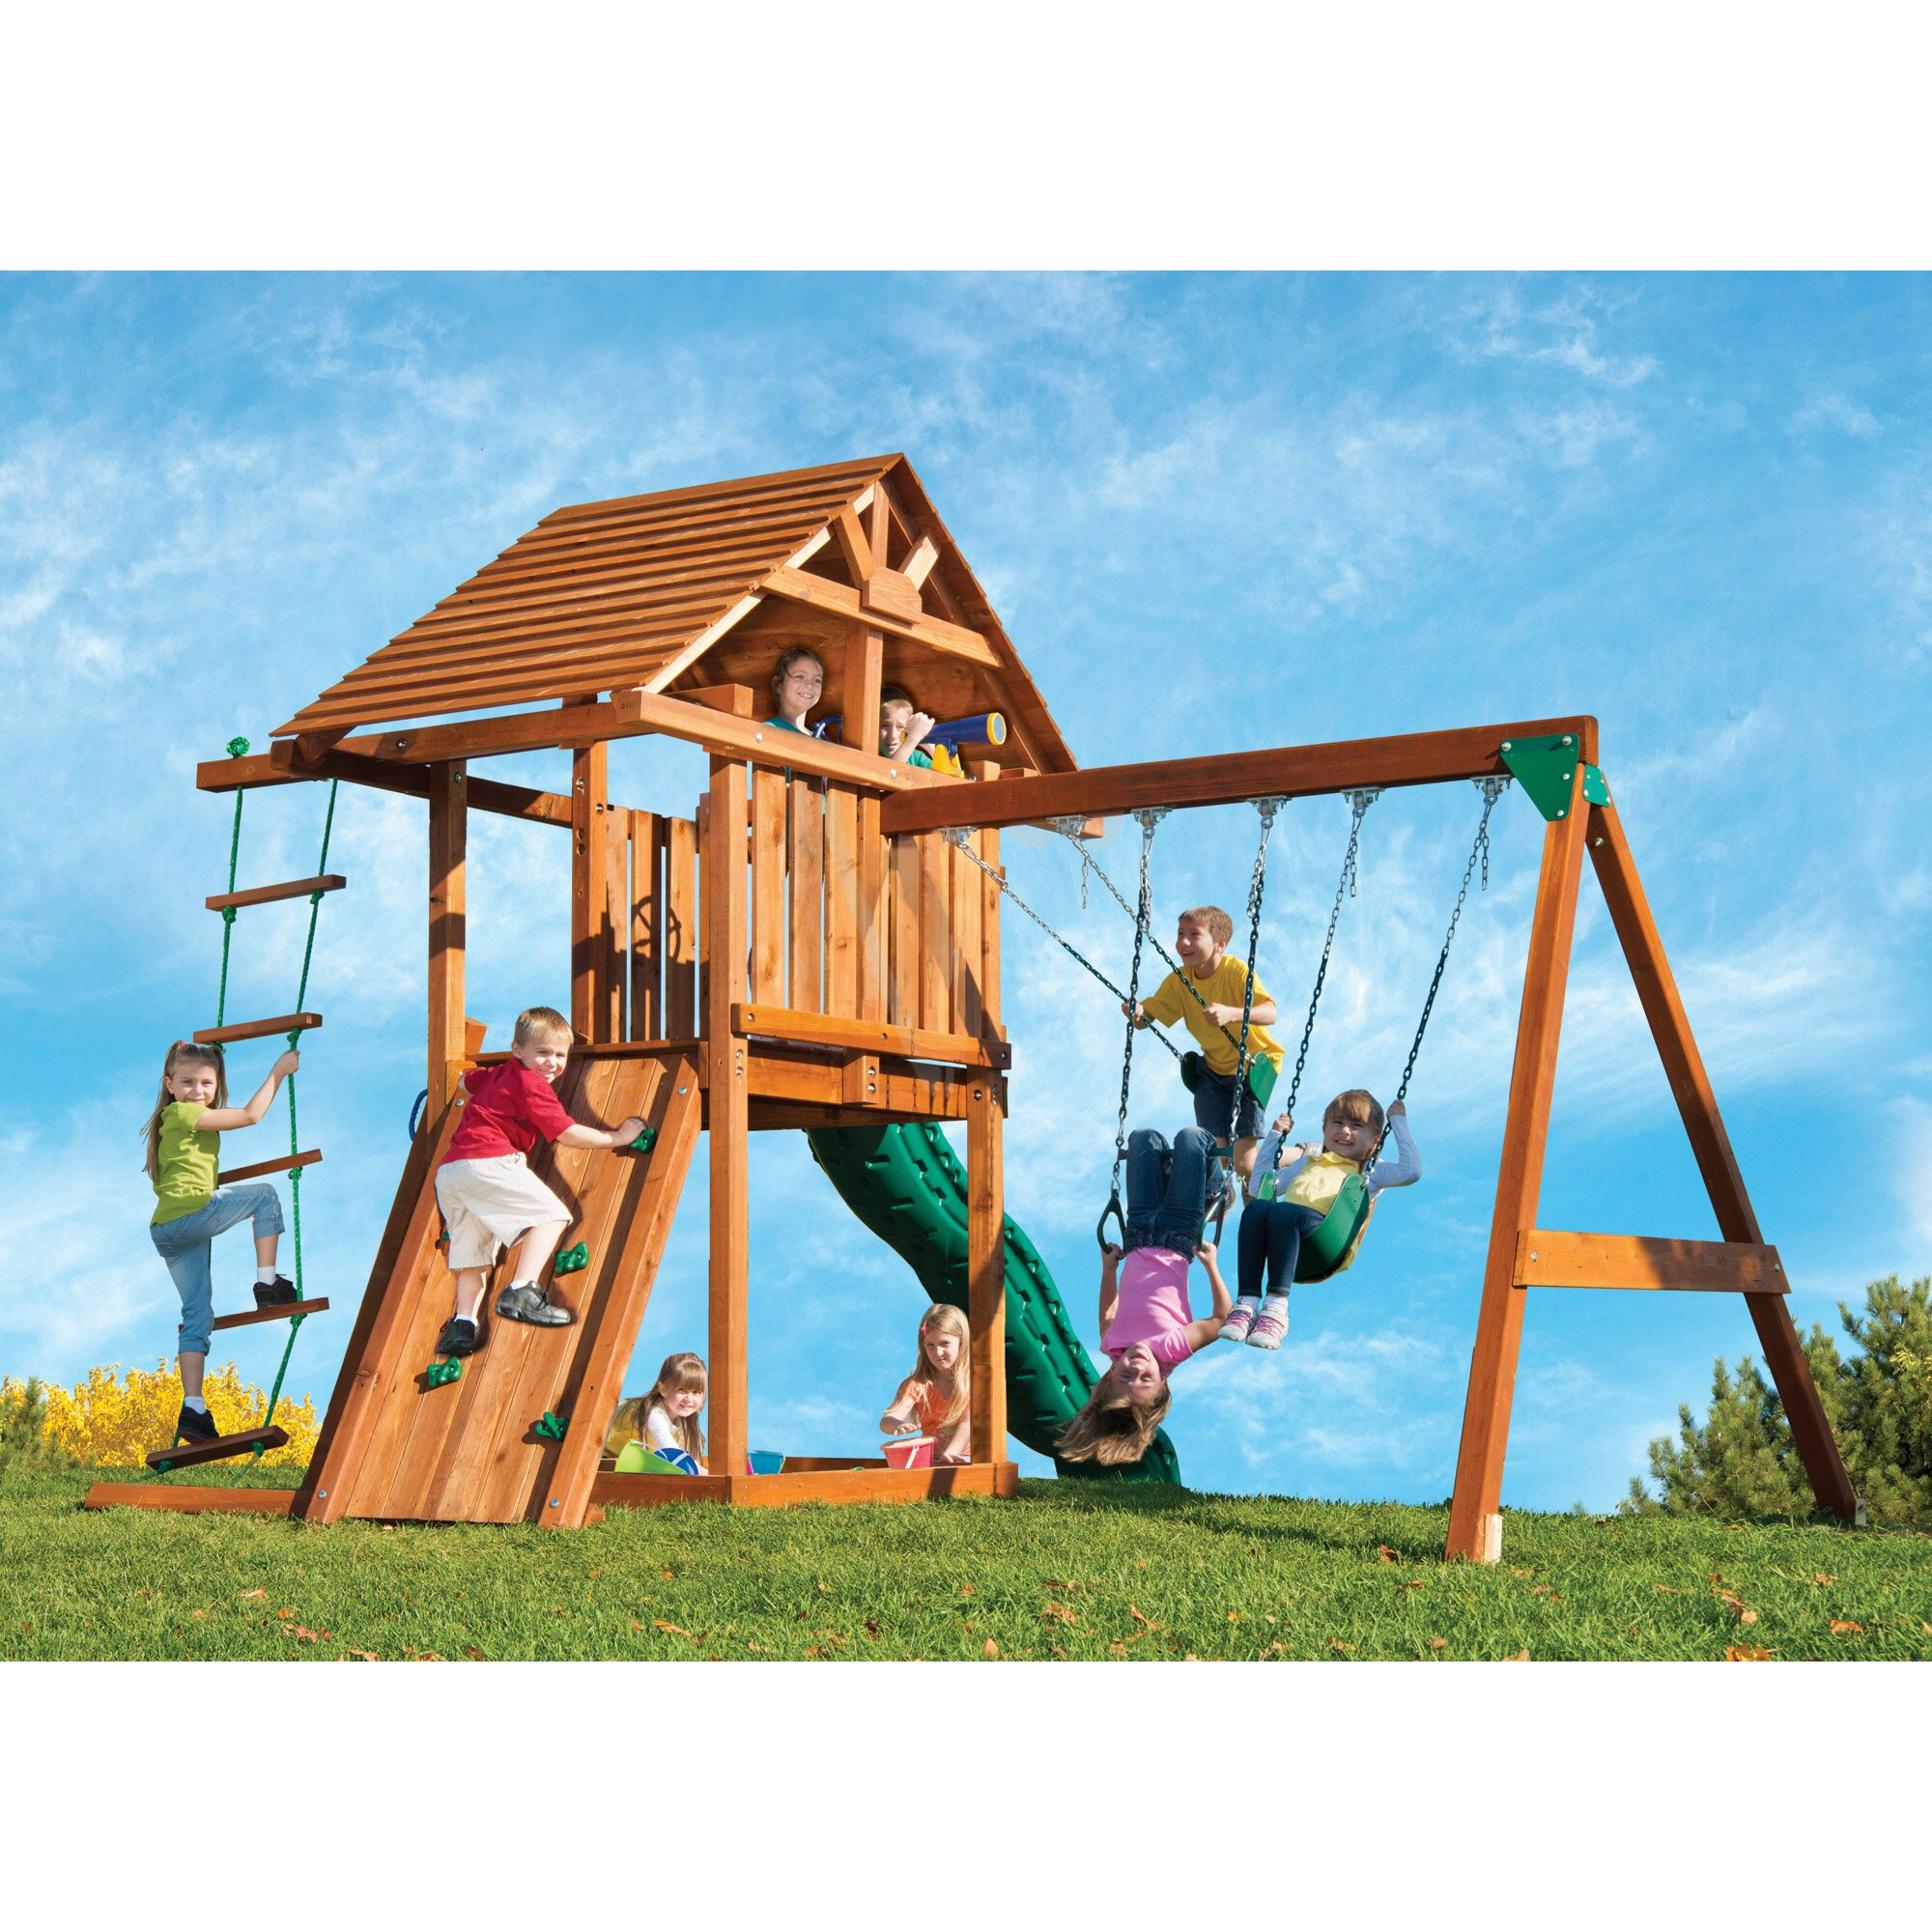 find available proud swing set dreamscape and some outdoor today with finest choose we from of the offer to gyms kids jungle pin are models sets over gym you sure